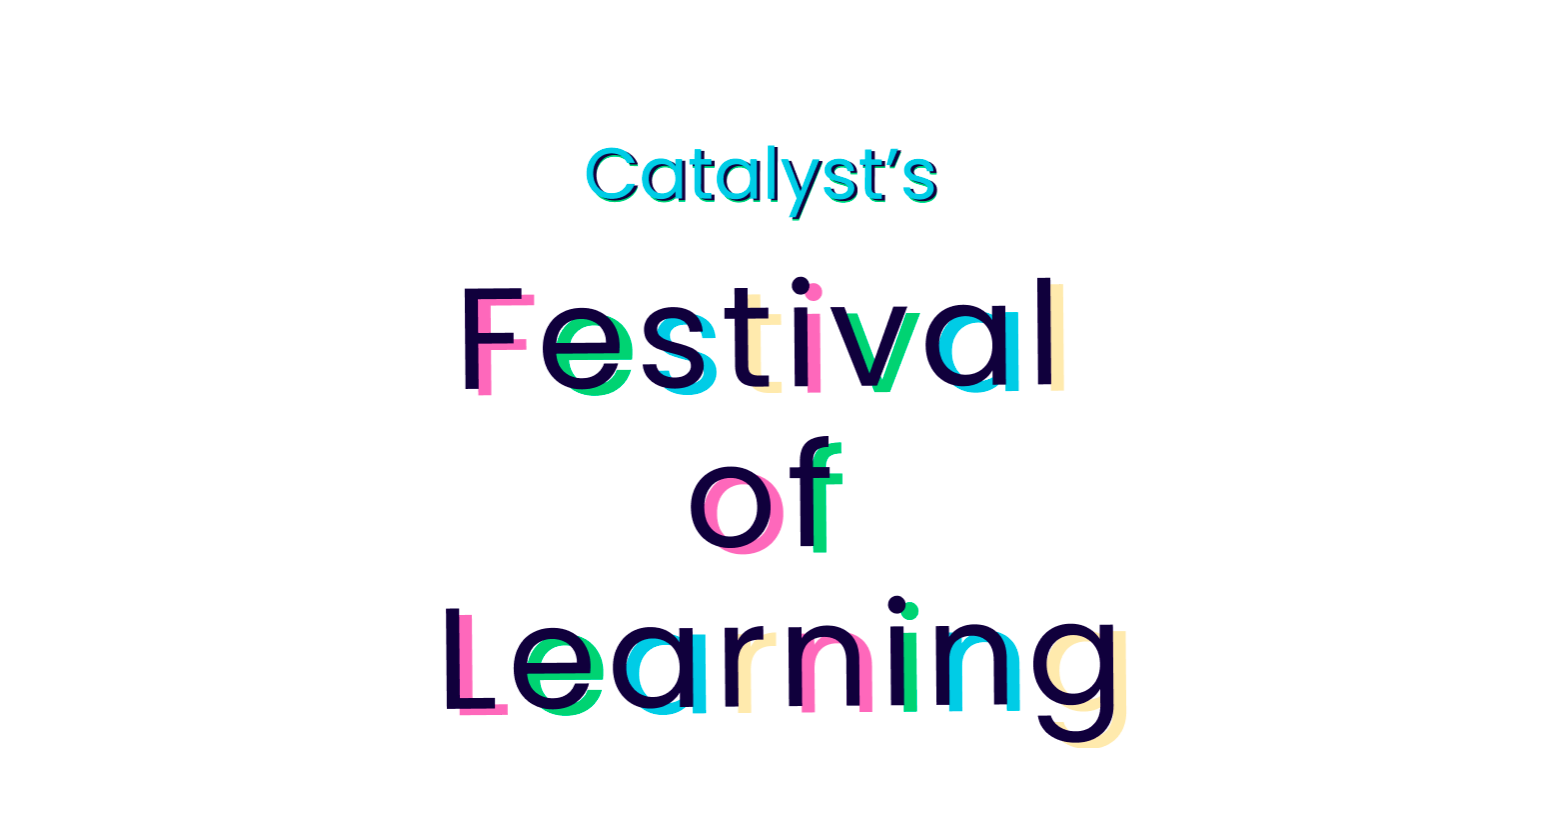 Catalyst's Festival of Learning